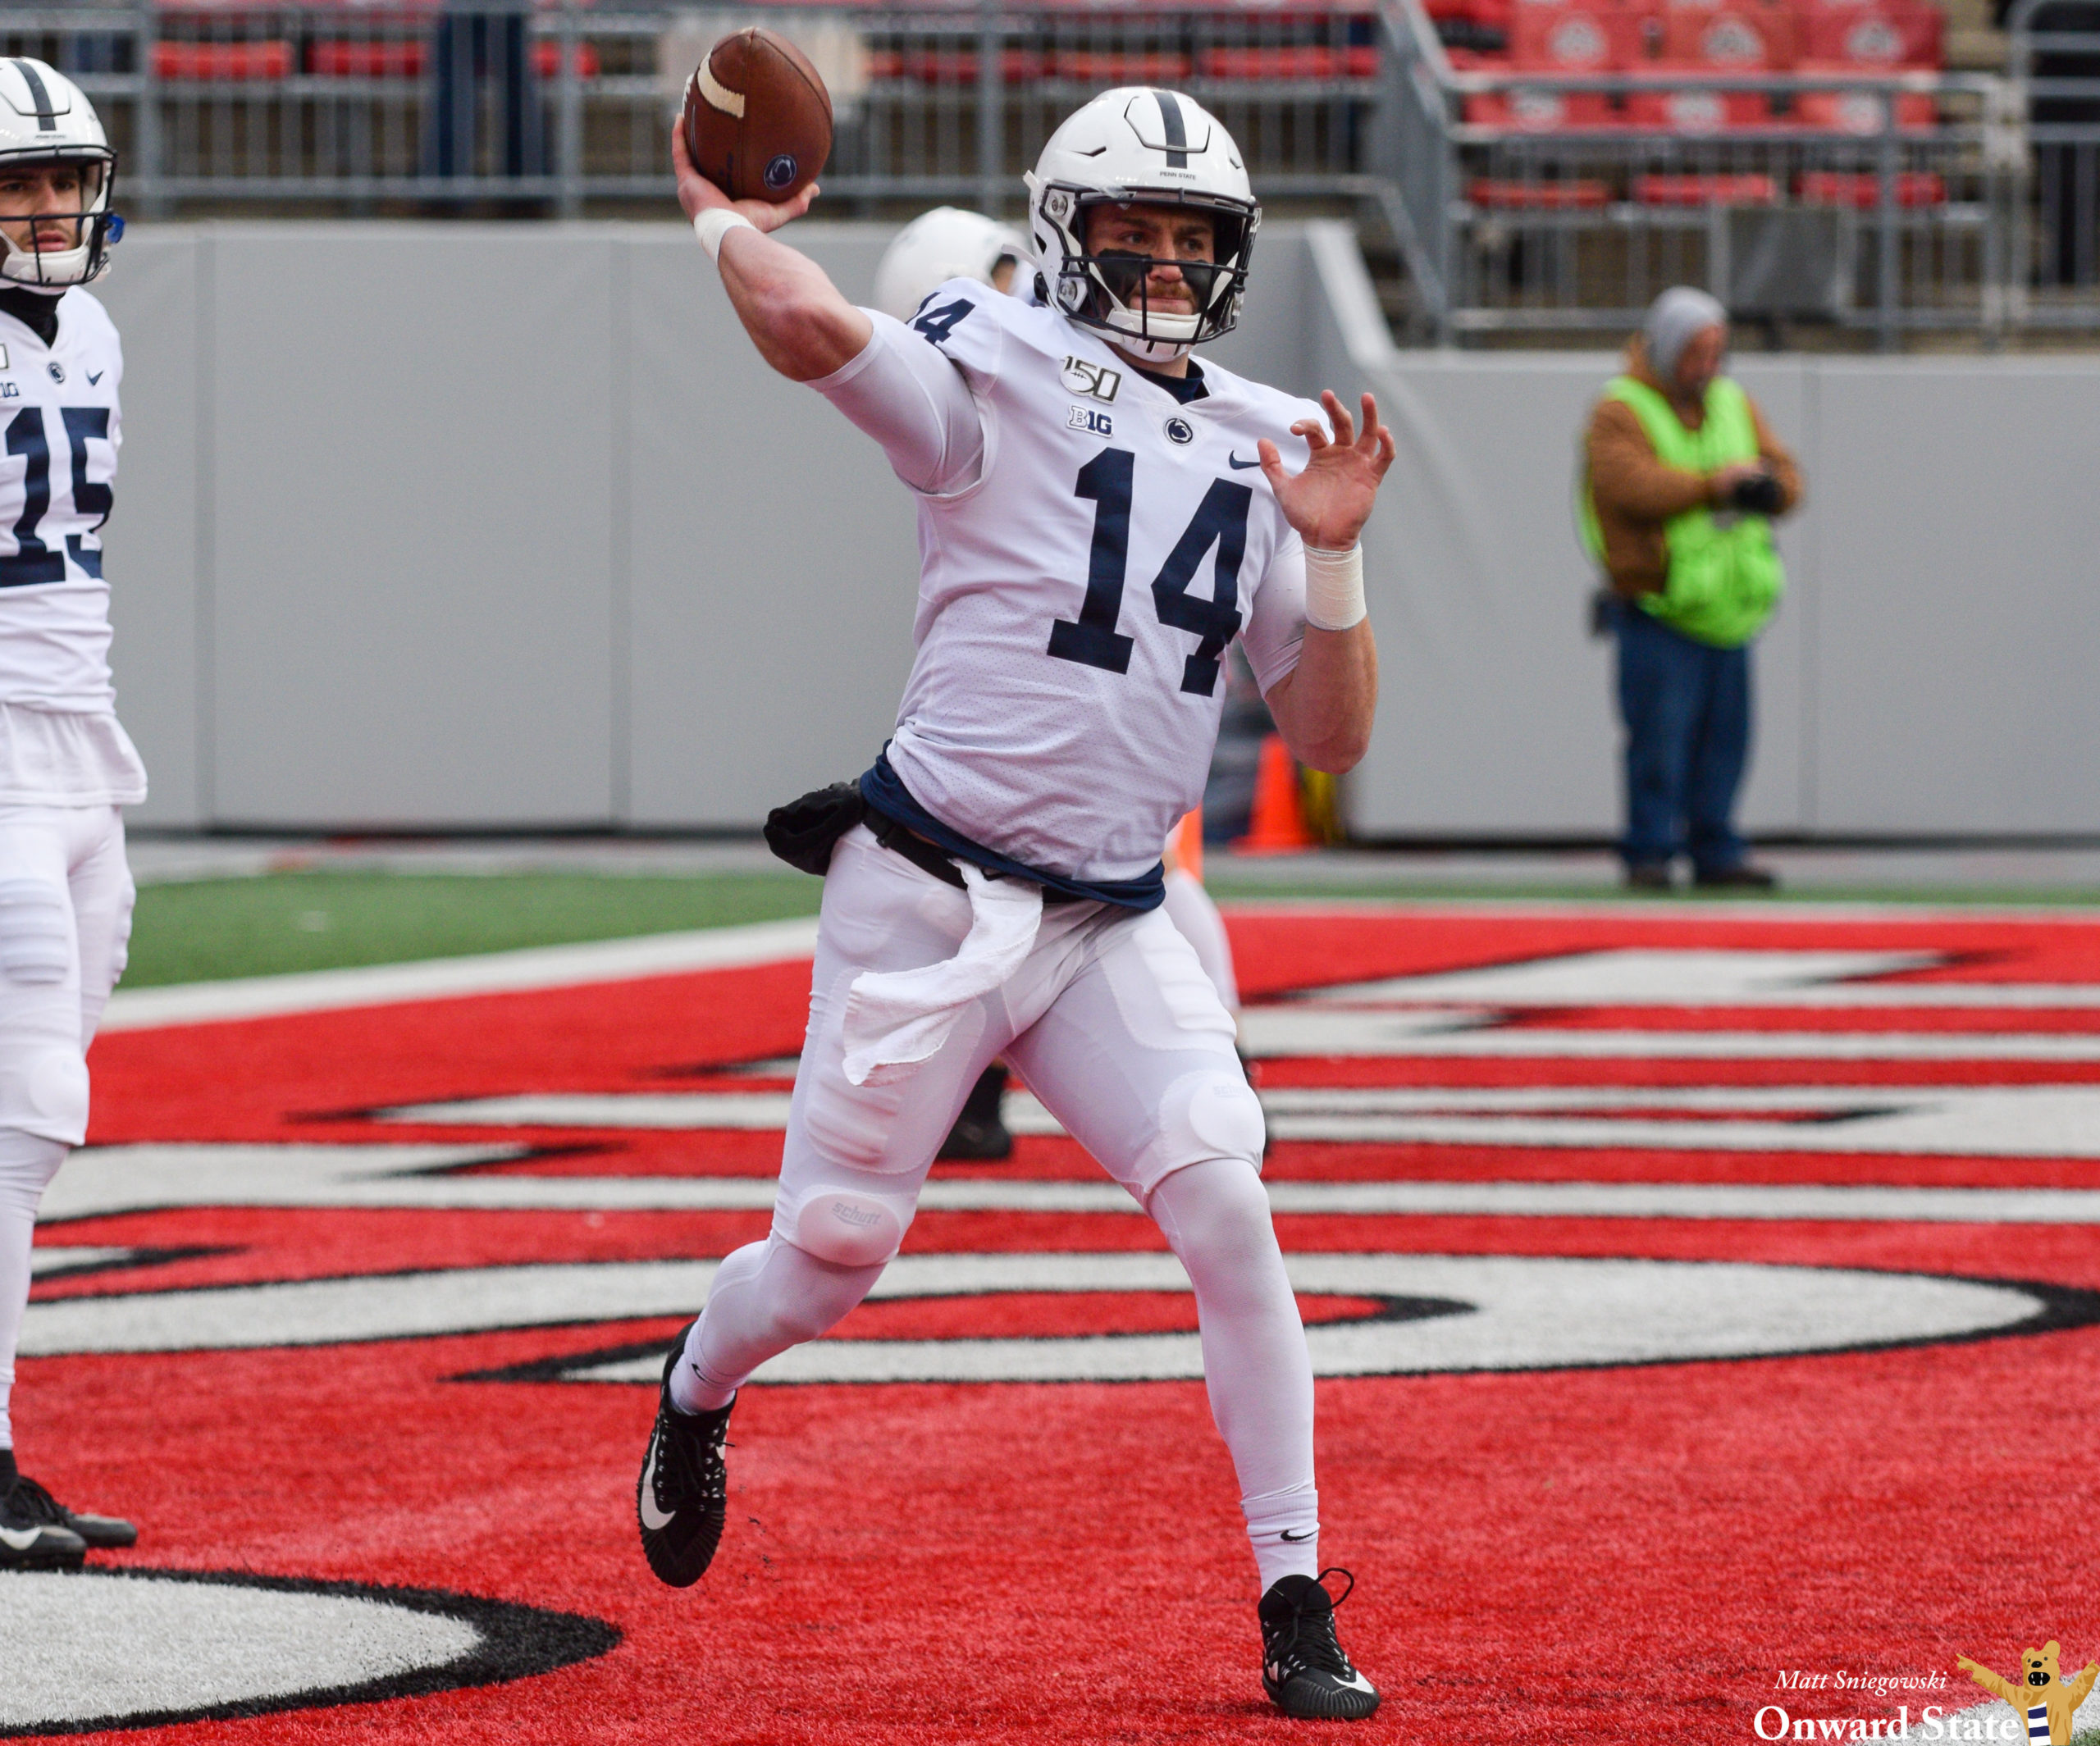 Ole Miss Rebels vs. Penn State Nittany Lions ATS Pick & Preview 11/27/19